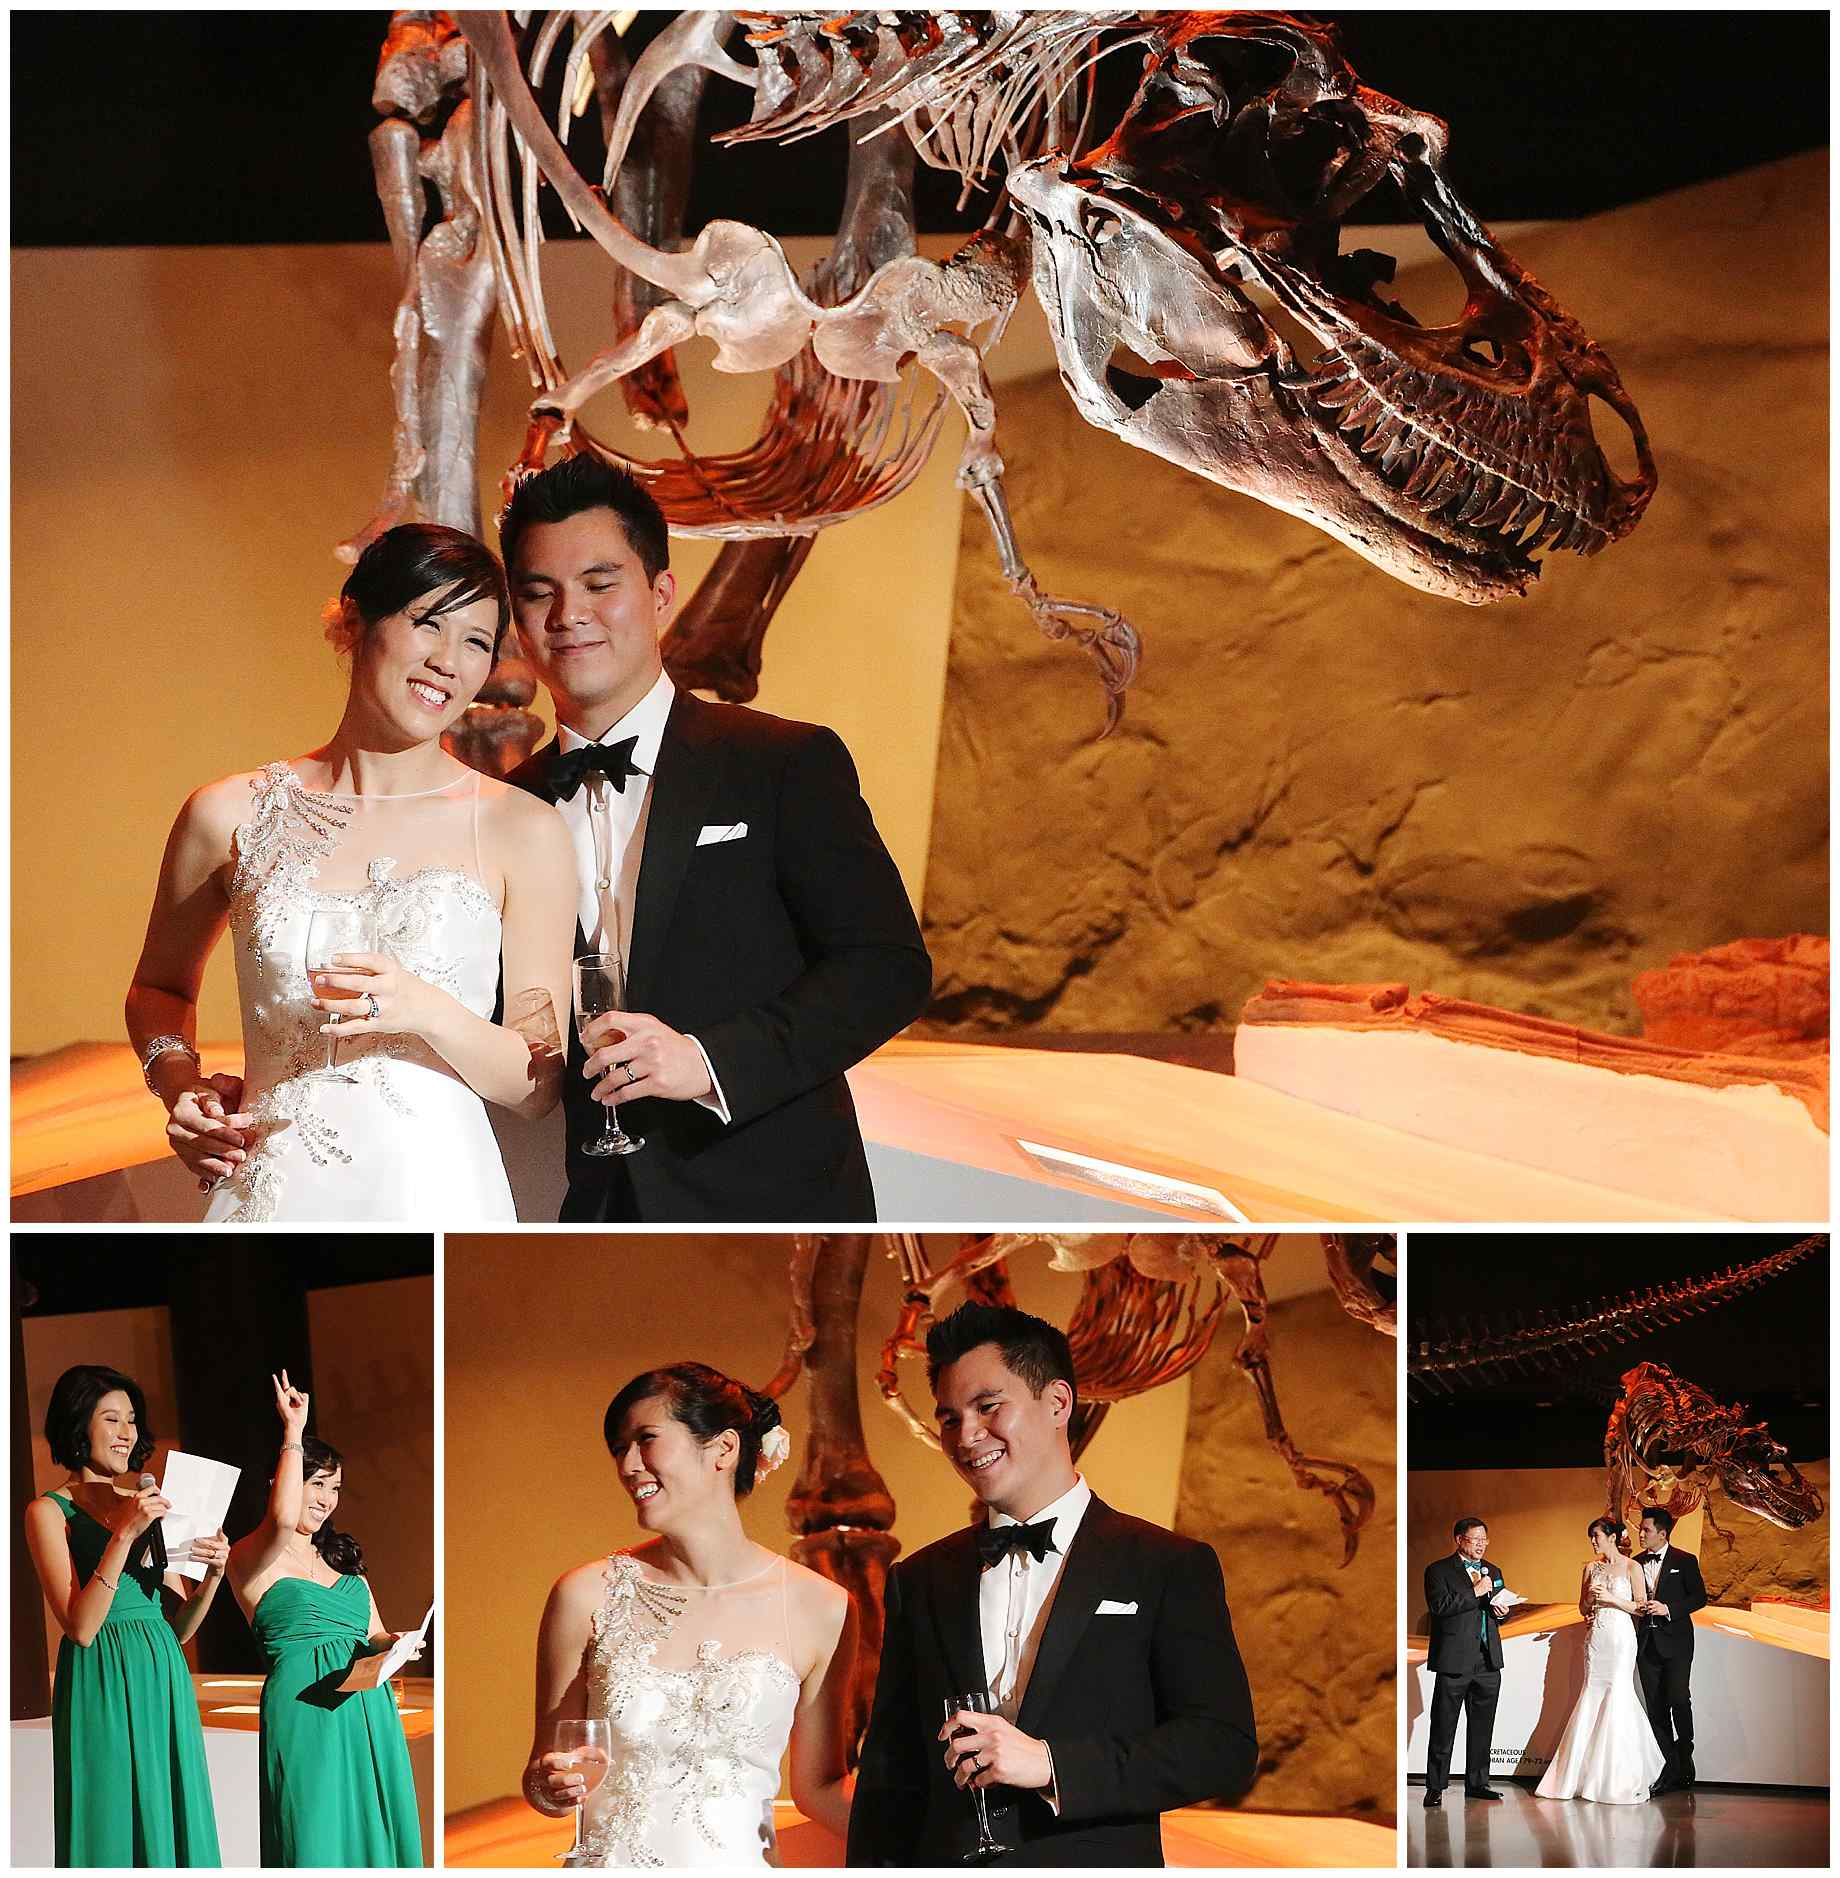 houston-museum-of-natural-science-wedding-photos-026